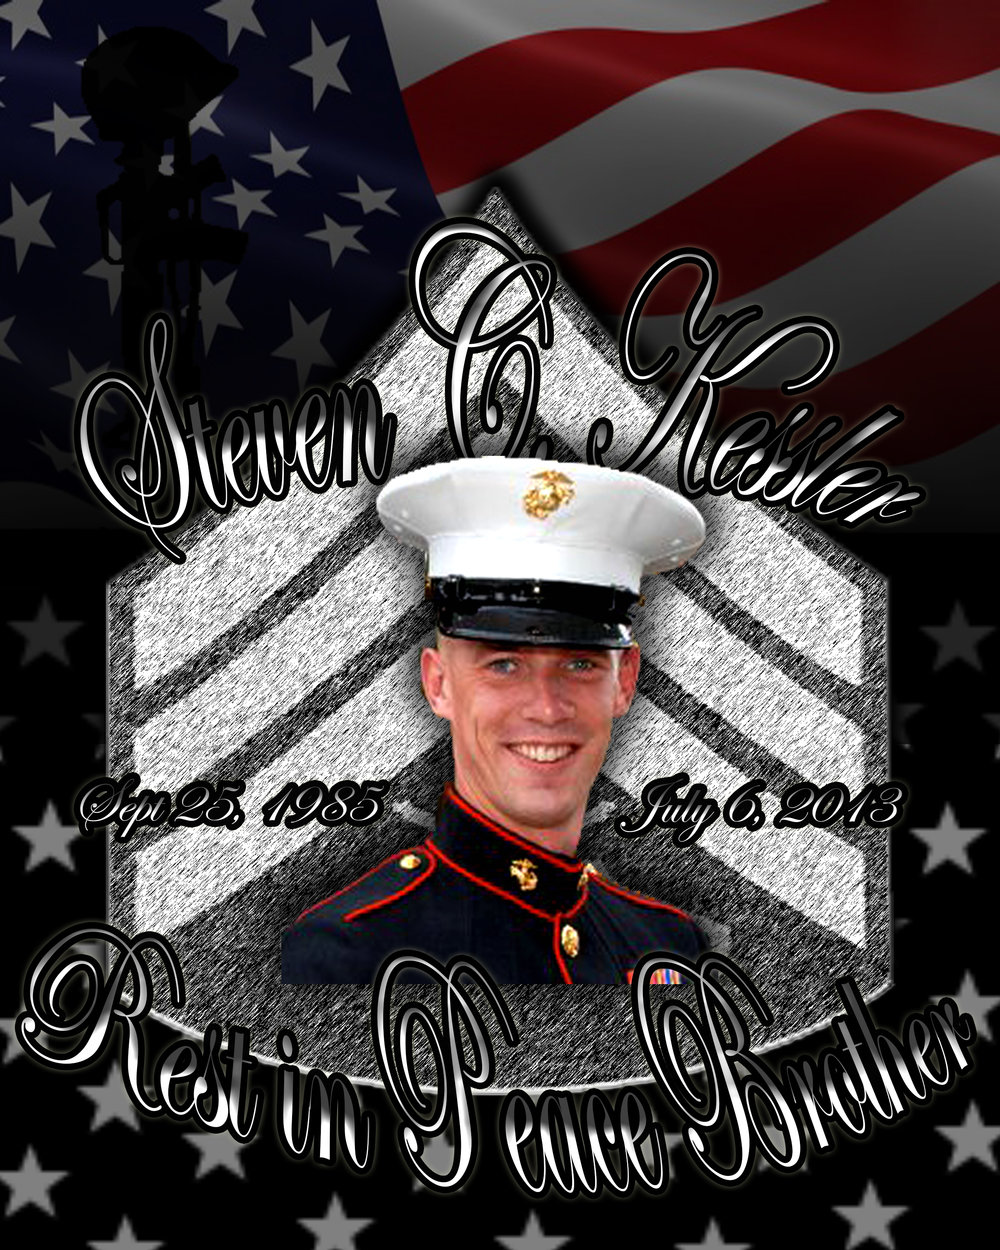 Sgt. Steven Craig Kessler  Sept 25, 1985 - July 6, 2013